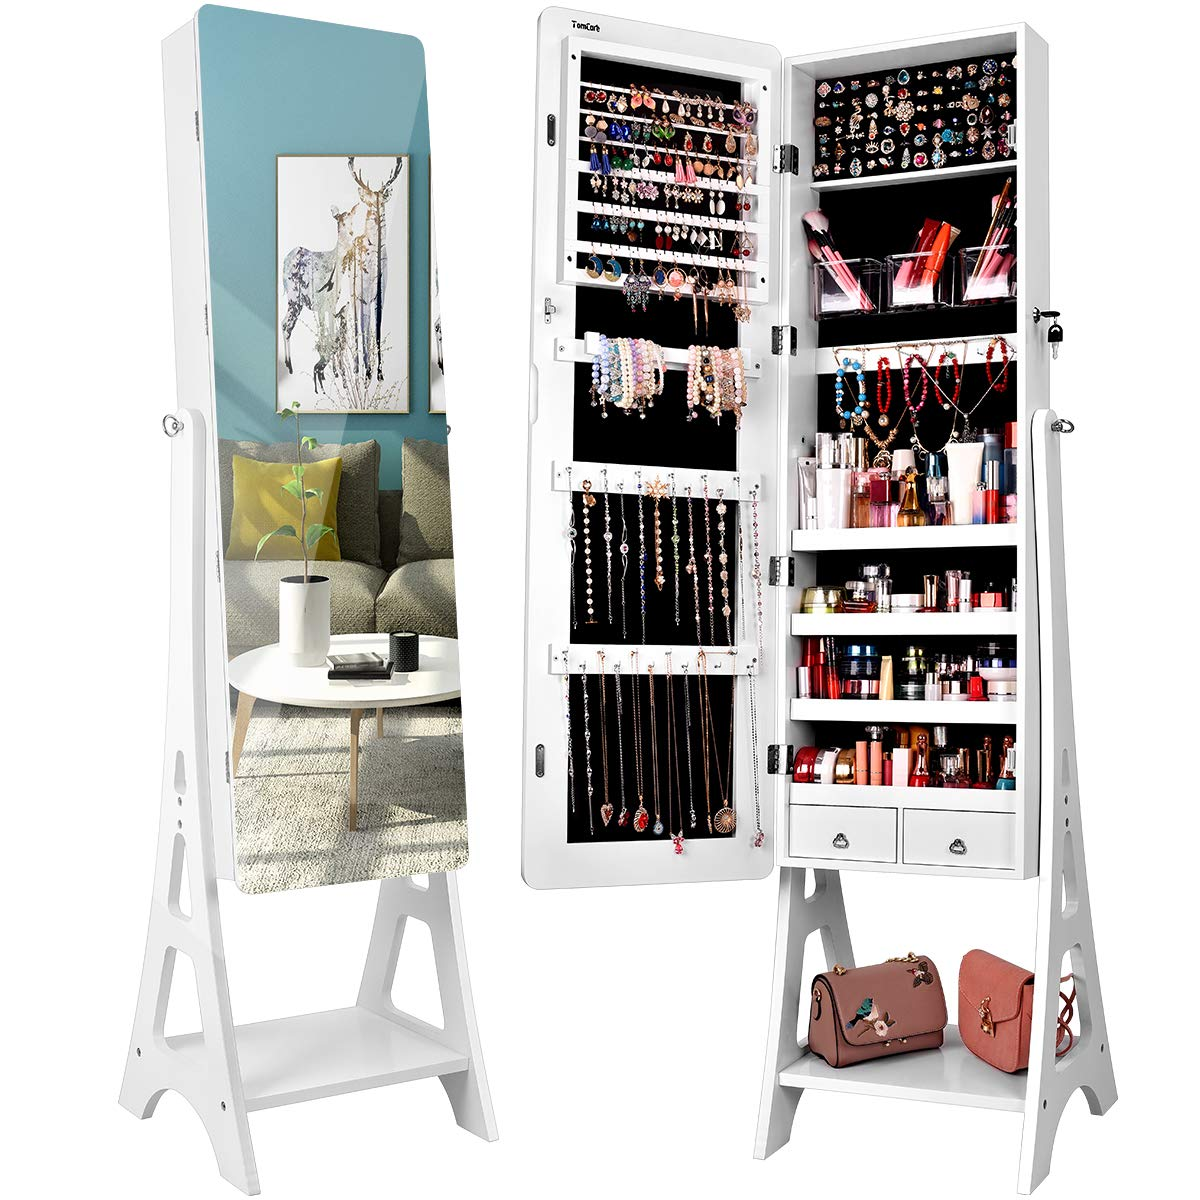 TomCare Jewelry Organizer Jewelry Cabinet Free Standing Jewelry Armoire Lockable Tilt Angle Adjustable Jewelry Box withFull Length Mirror & 2 Drawers Earring OrganizerJewelry Storage Holder, White by TomCare (Image #1)